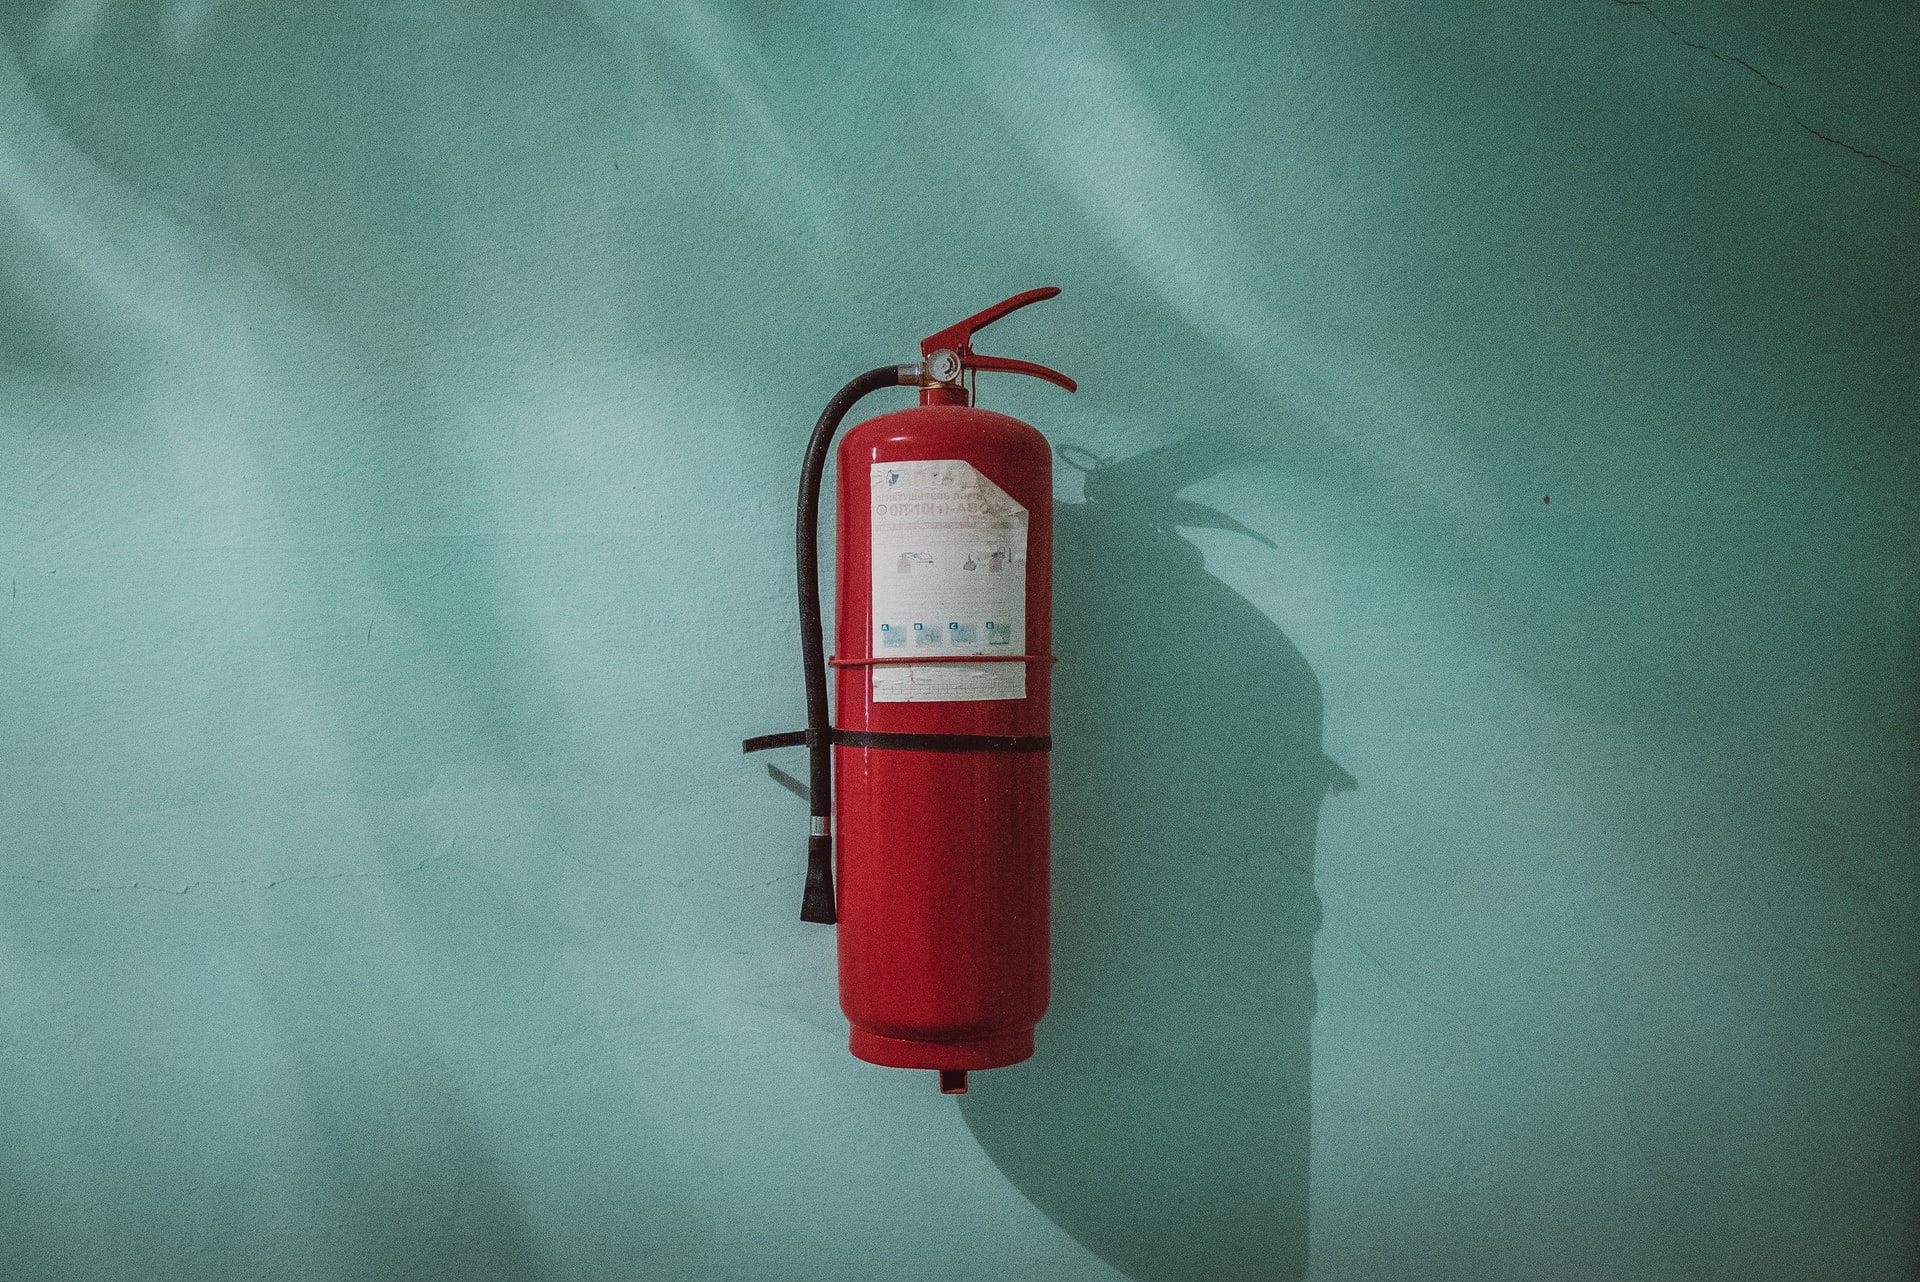 Emergency Fund: What Is It, and Do You Need One?